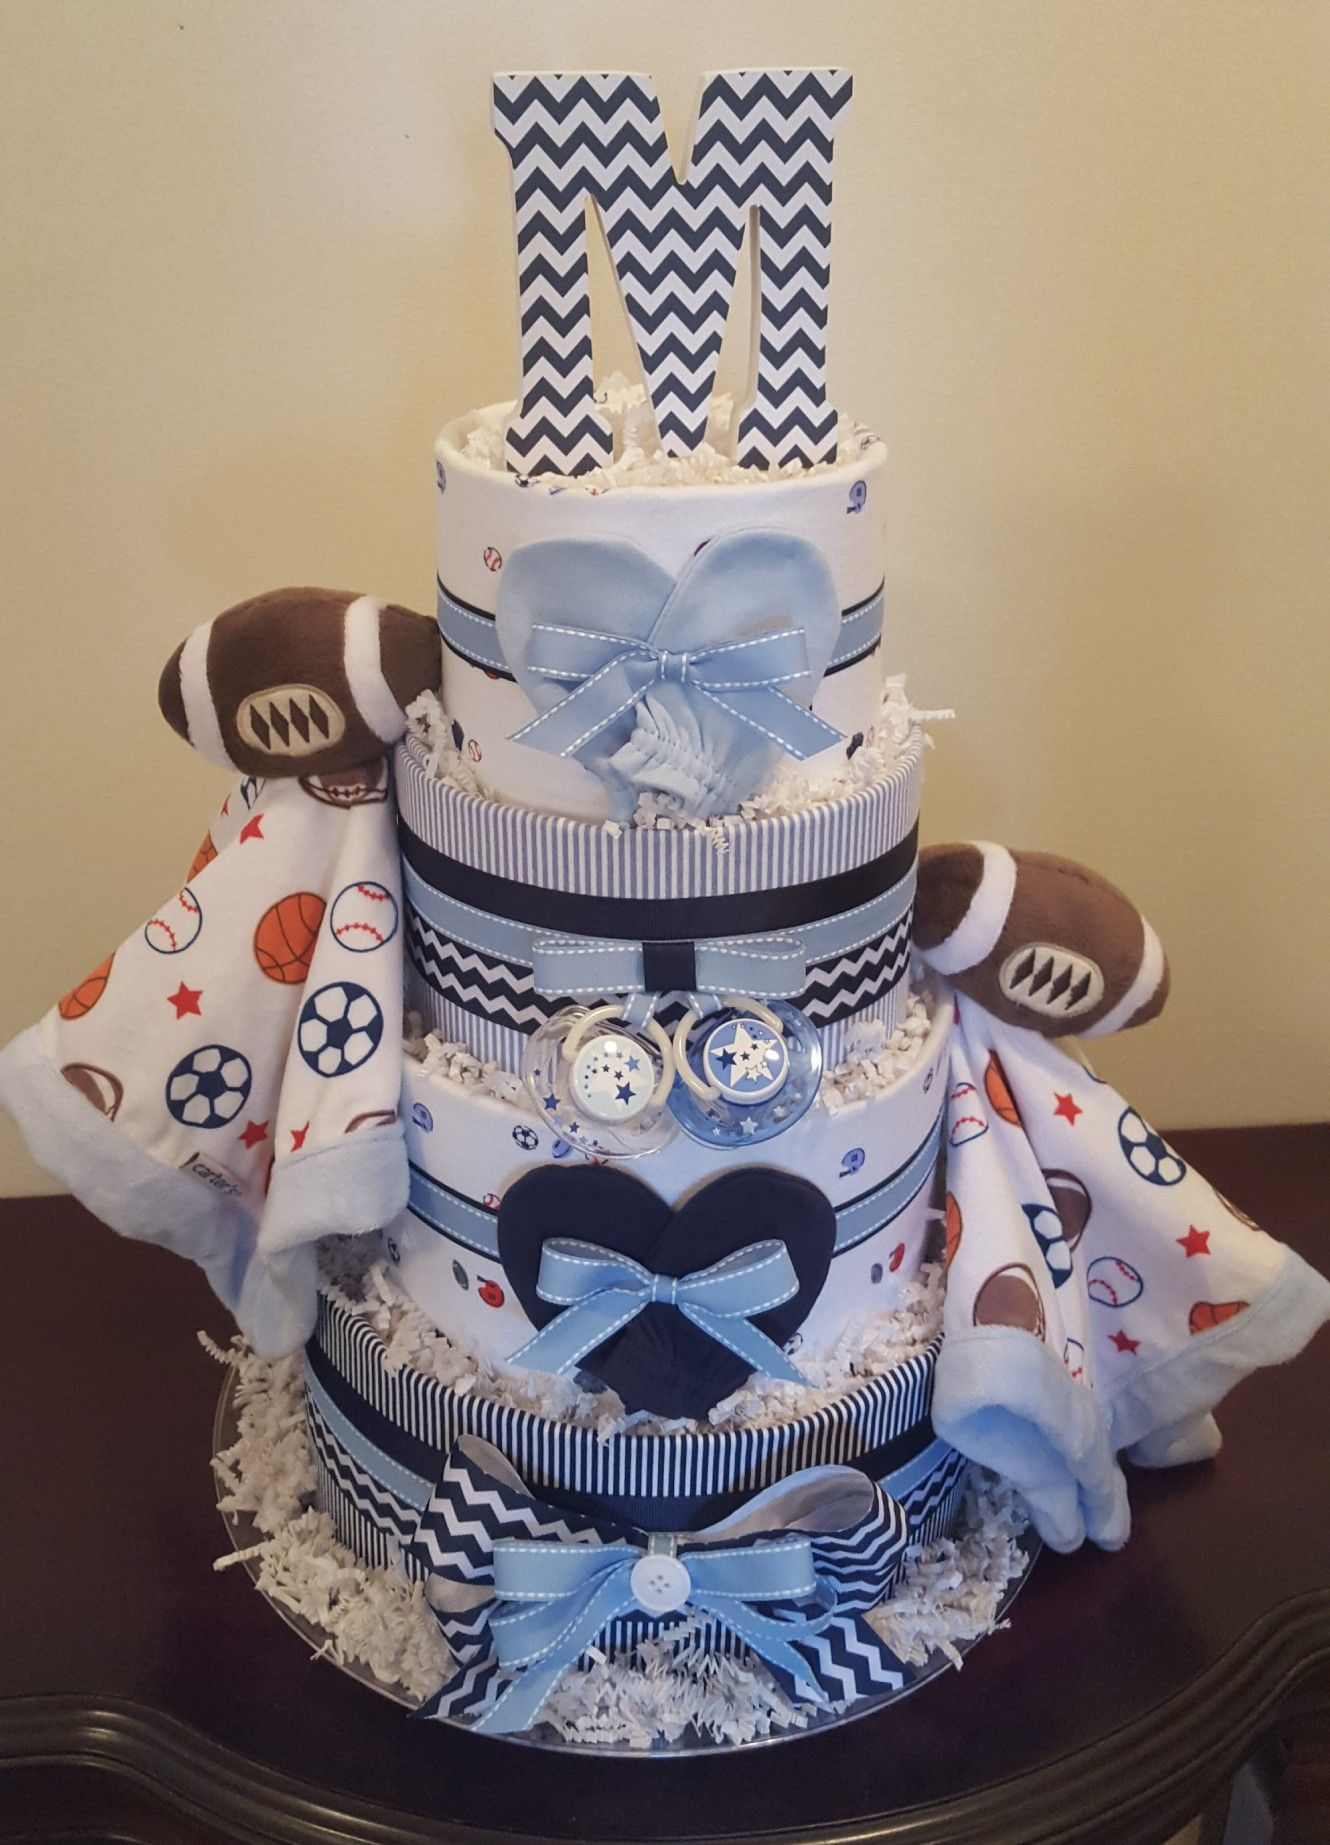 Sports Themed Diaper Cake Twin Boys Baby Shower Centerpiece Gift Visit My Facebook Pag Boy Baby Shower Centerpieces Twin Boys Baby Shower Sports Baby Shower